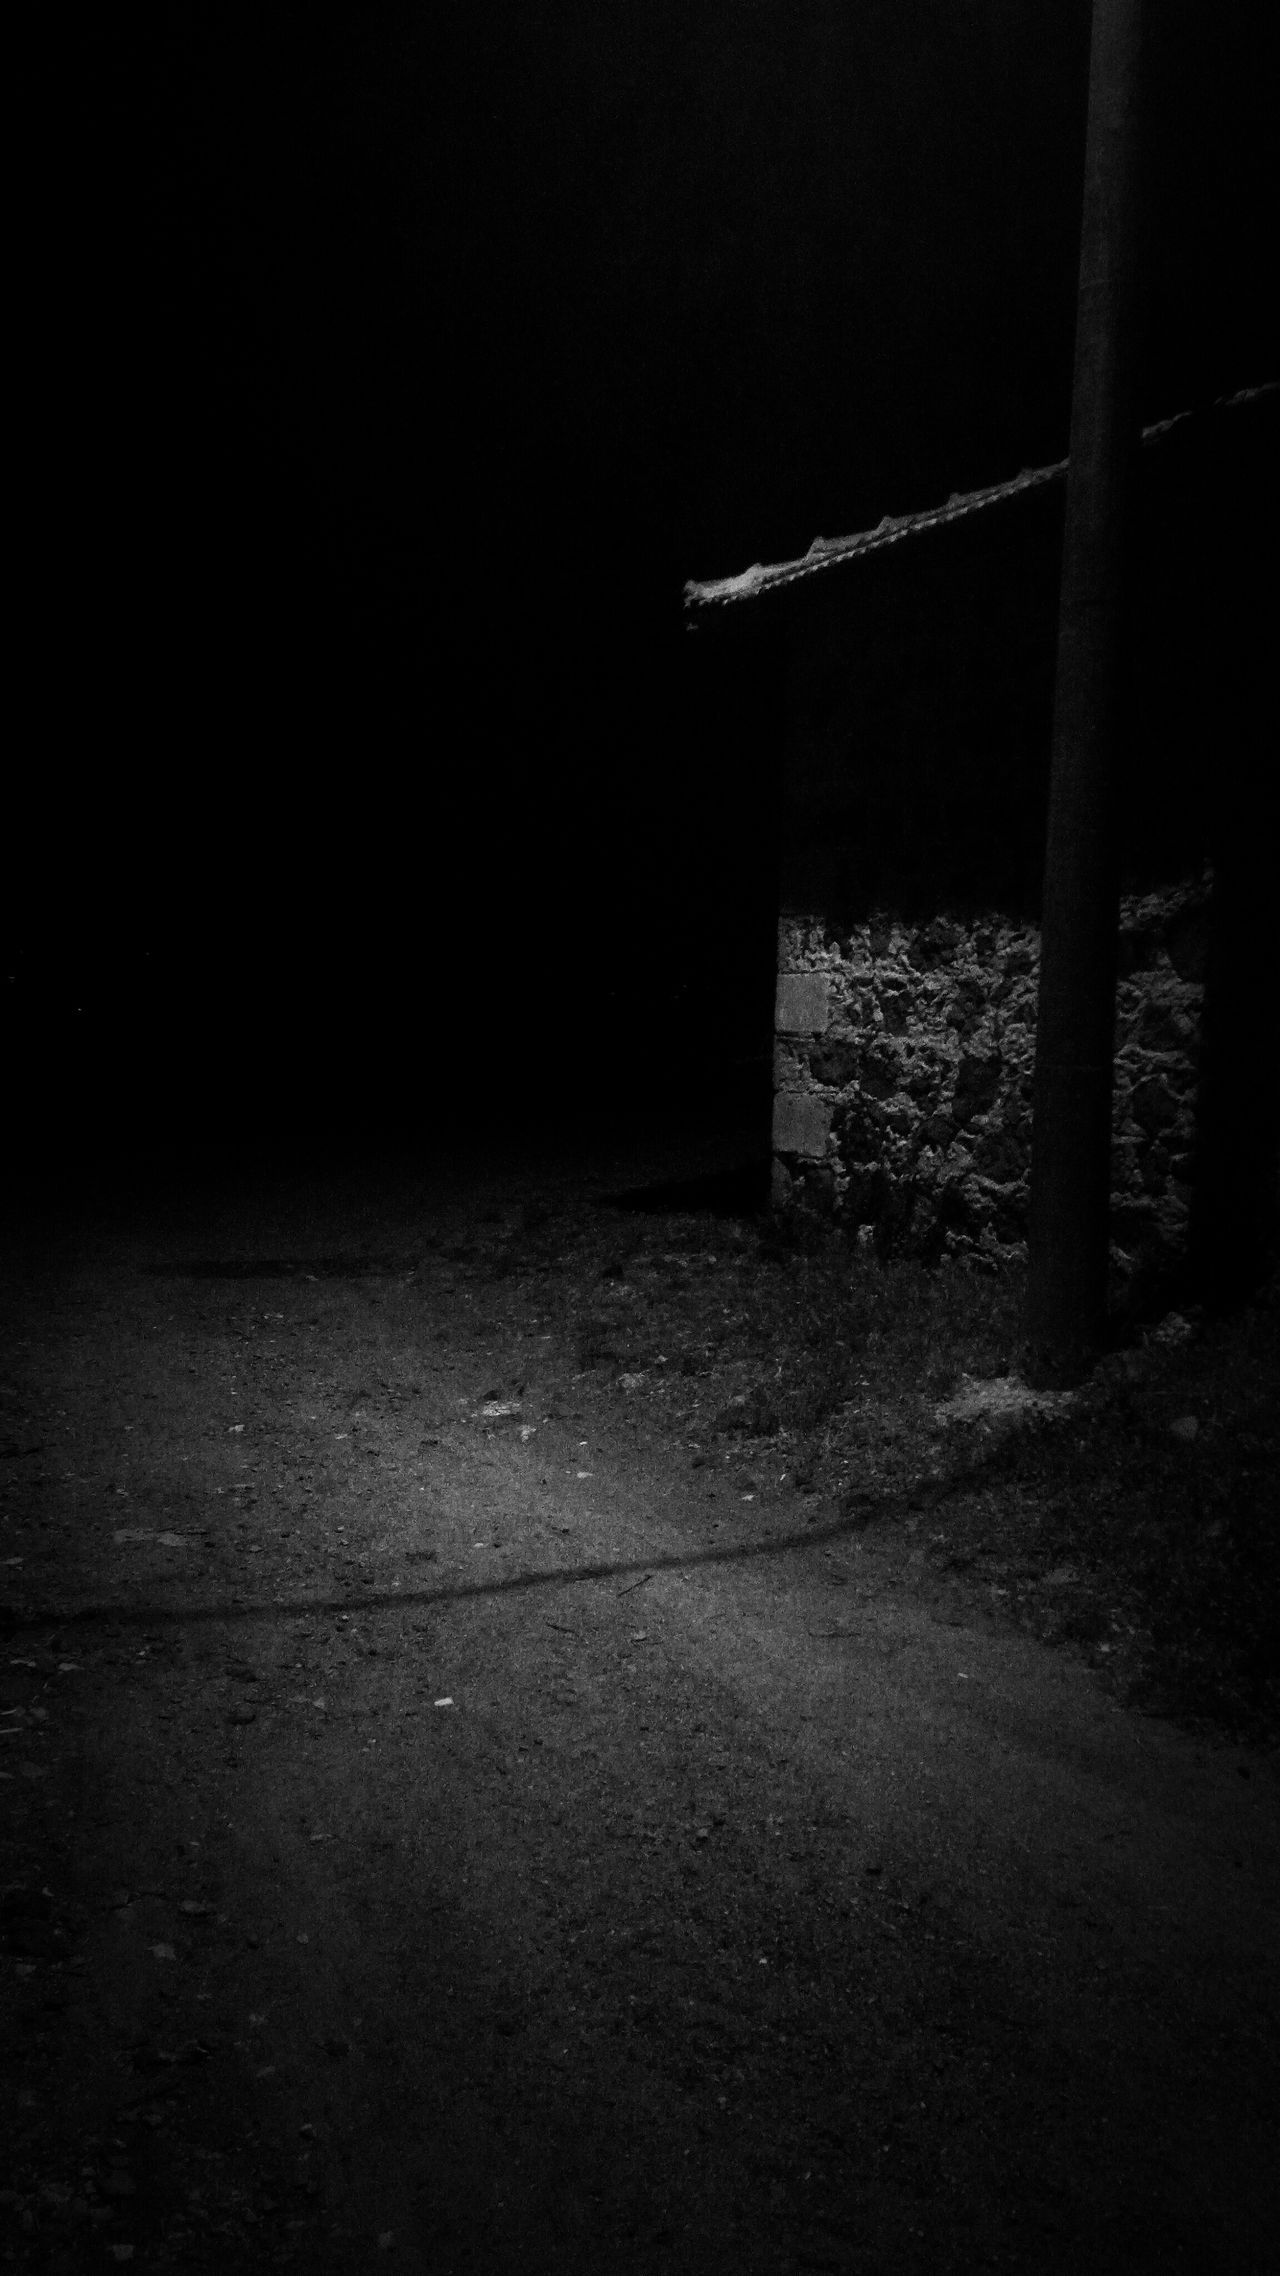 Dark Night Tranquility Footpath Outdoors Black And White The Way Forward No People Darkness Tranquil Scene Surface Level Long Dark Chocolate Casual Clothing Nature Photo Nikontop Focus On Foreground Sea Animal Themes Looking At Camera